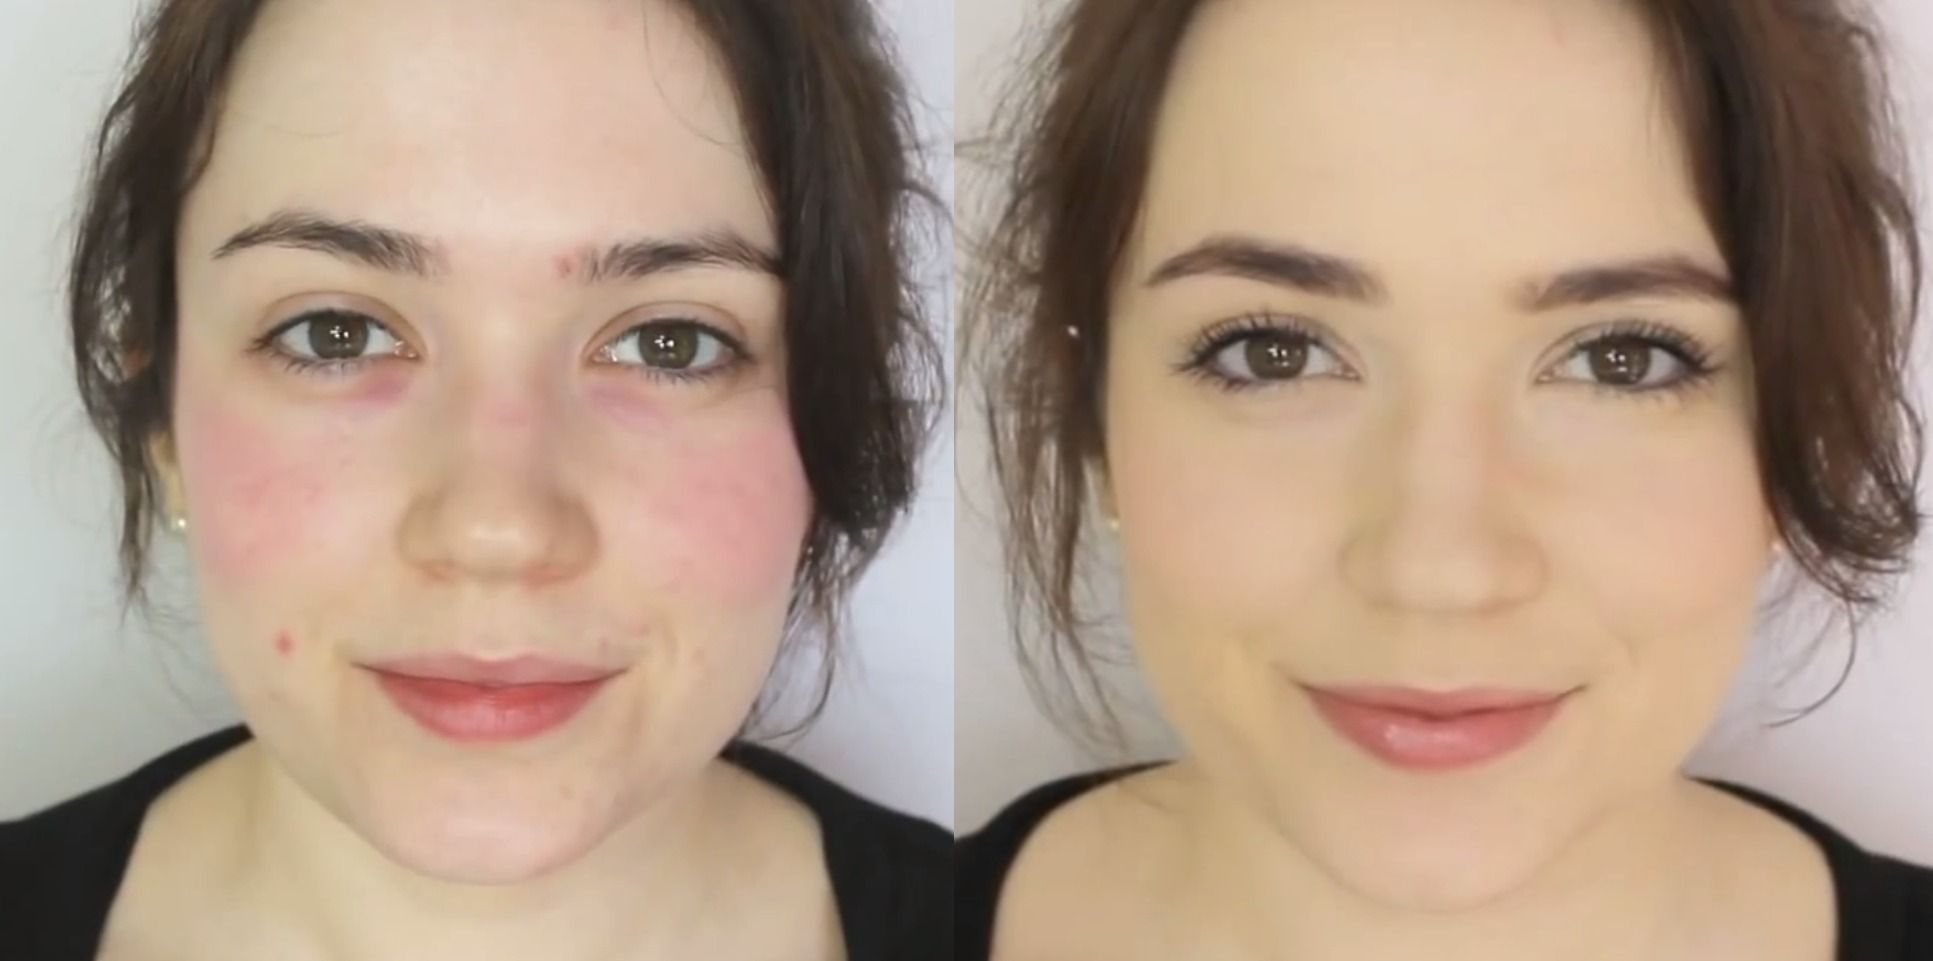 Makeup Tutorial For Concealing Redness